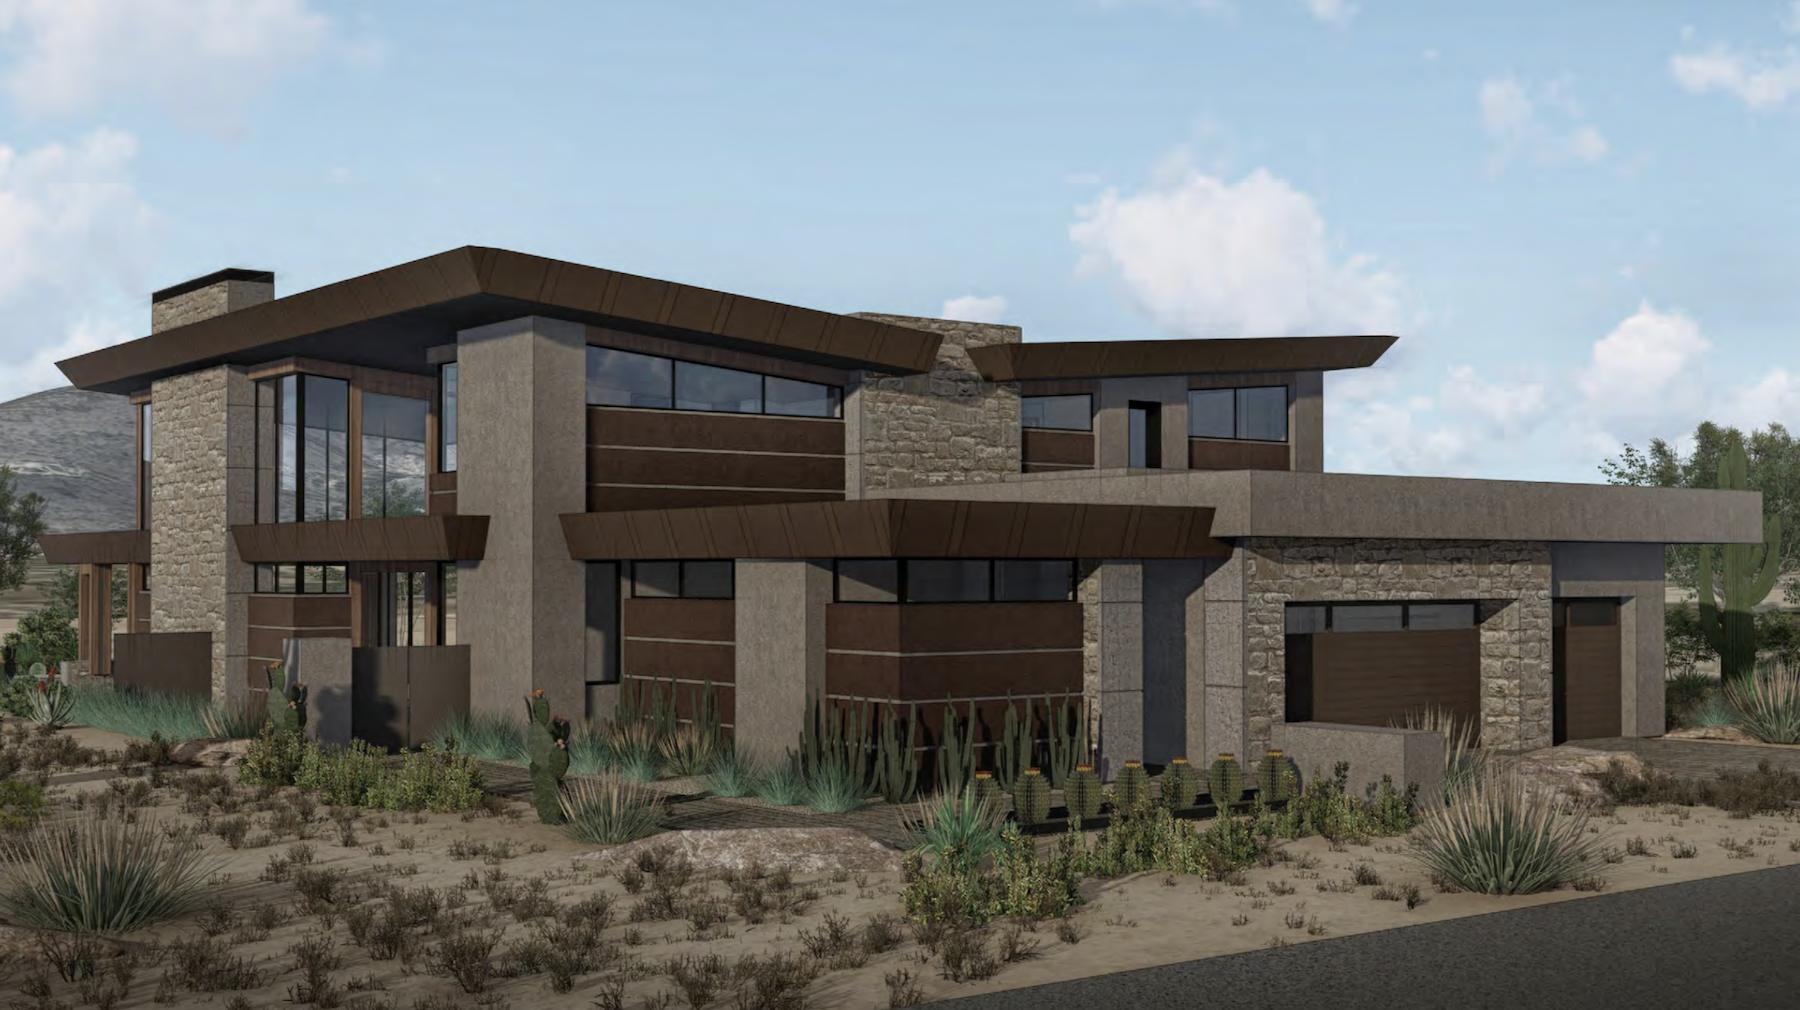 The Village at Seven Desert Mountain architecture by Drewett Works